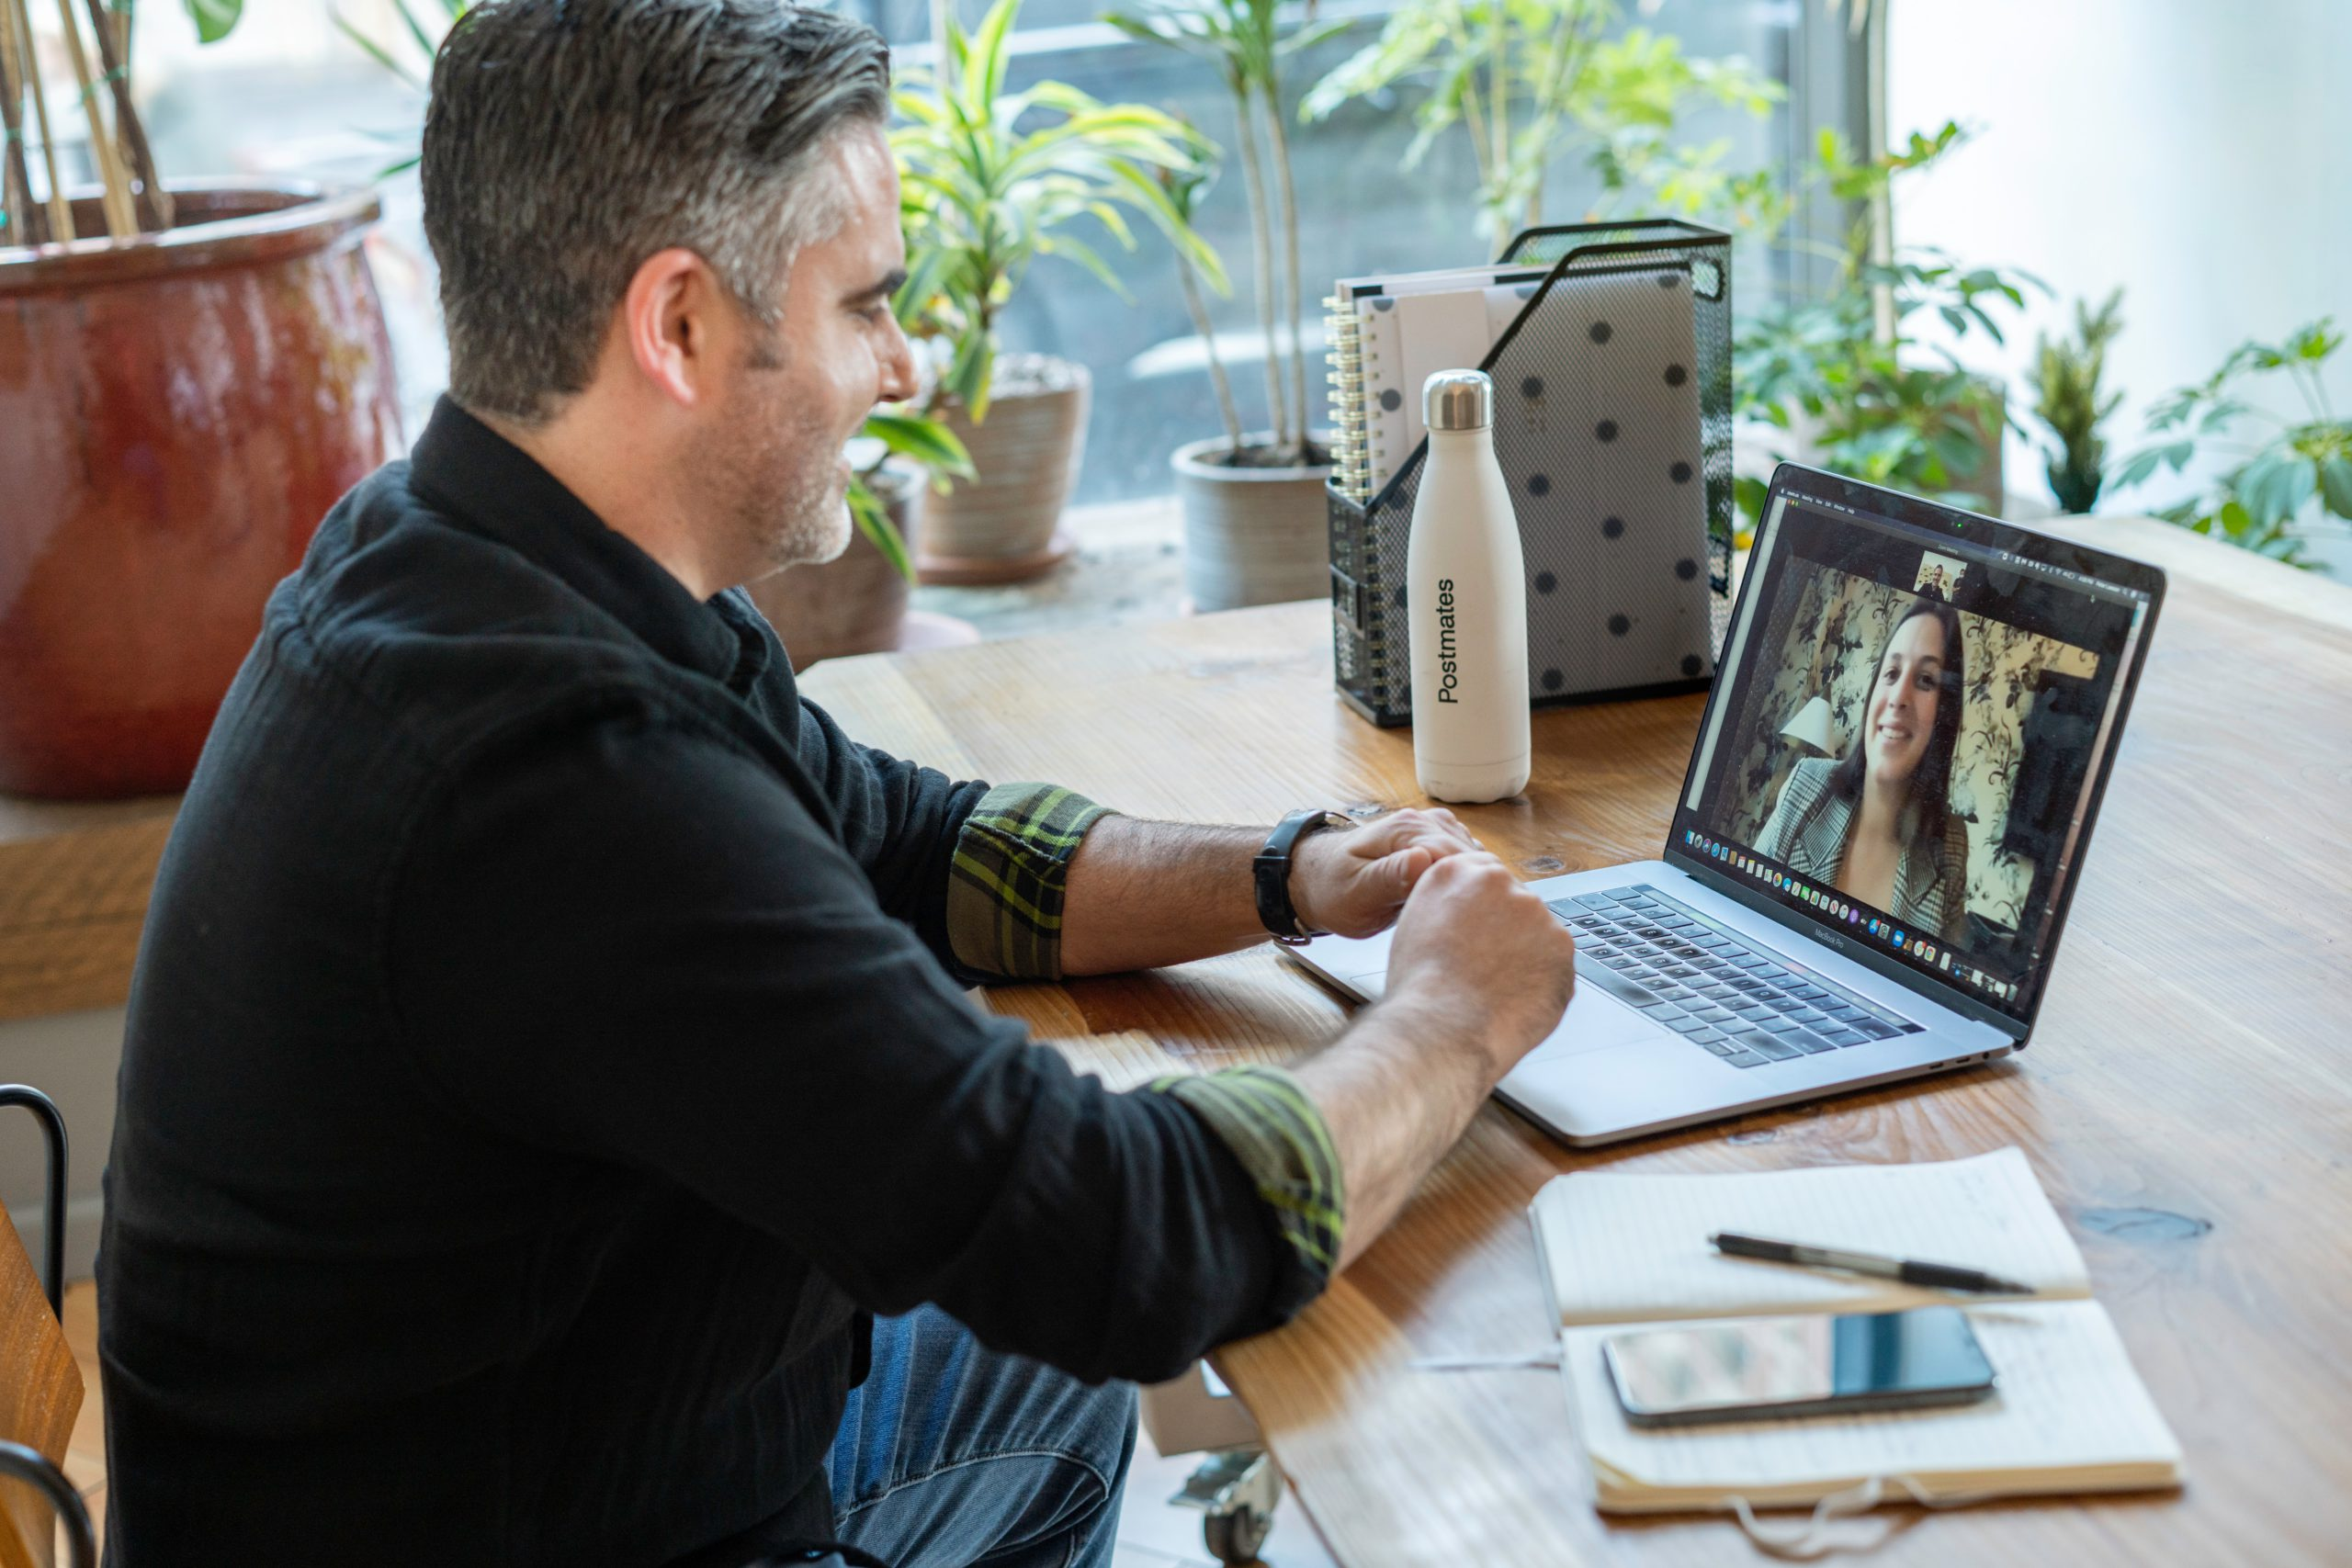 Remote Hiring and Remote Working - WeCP Blog Top 3 Technical Recruiting Trends of 2021